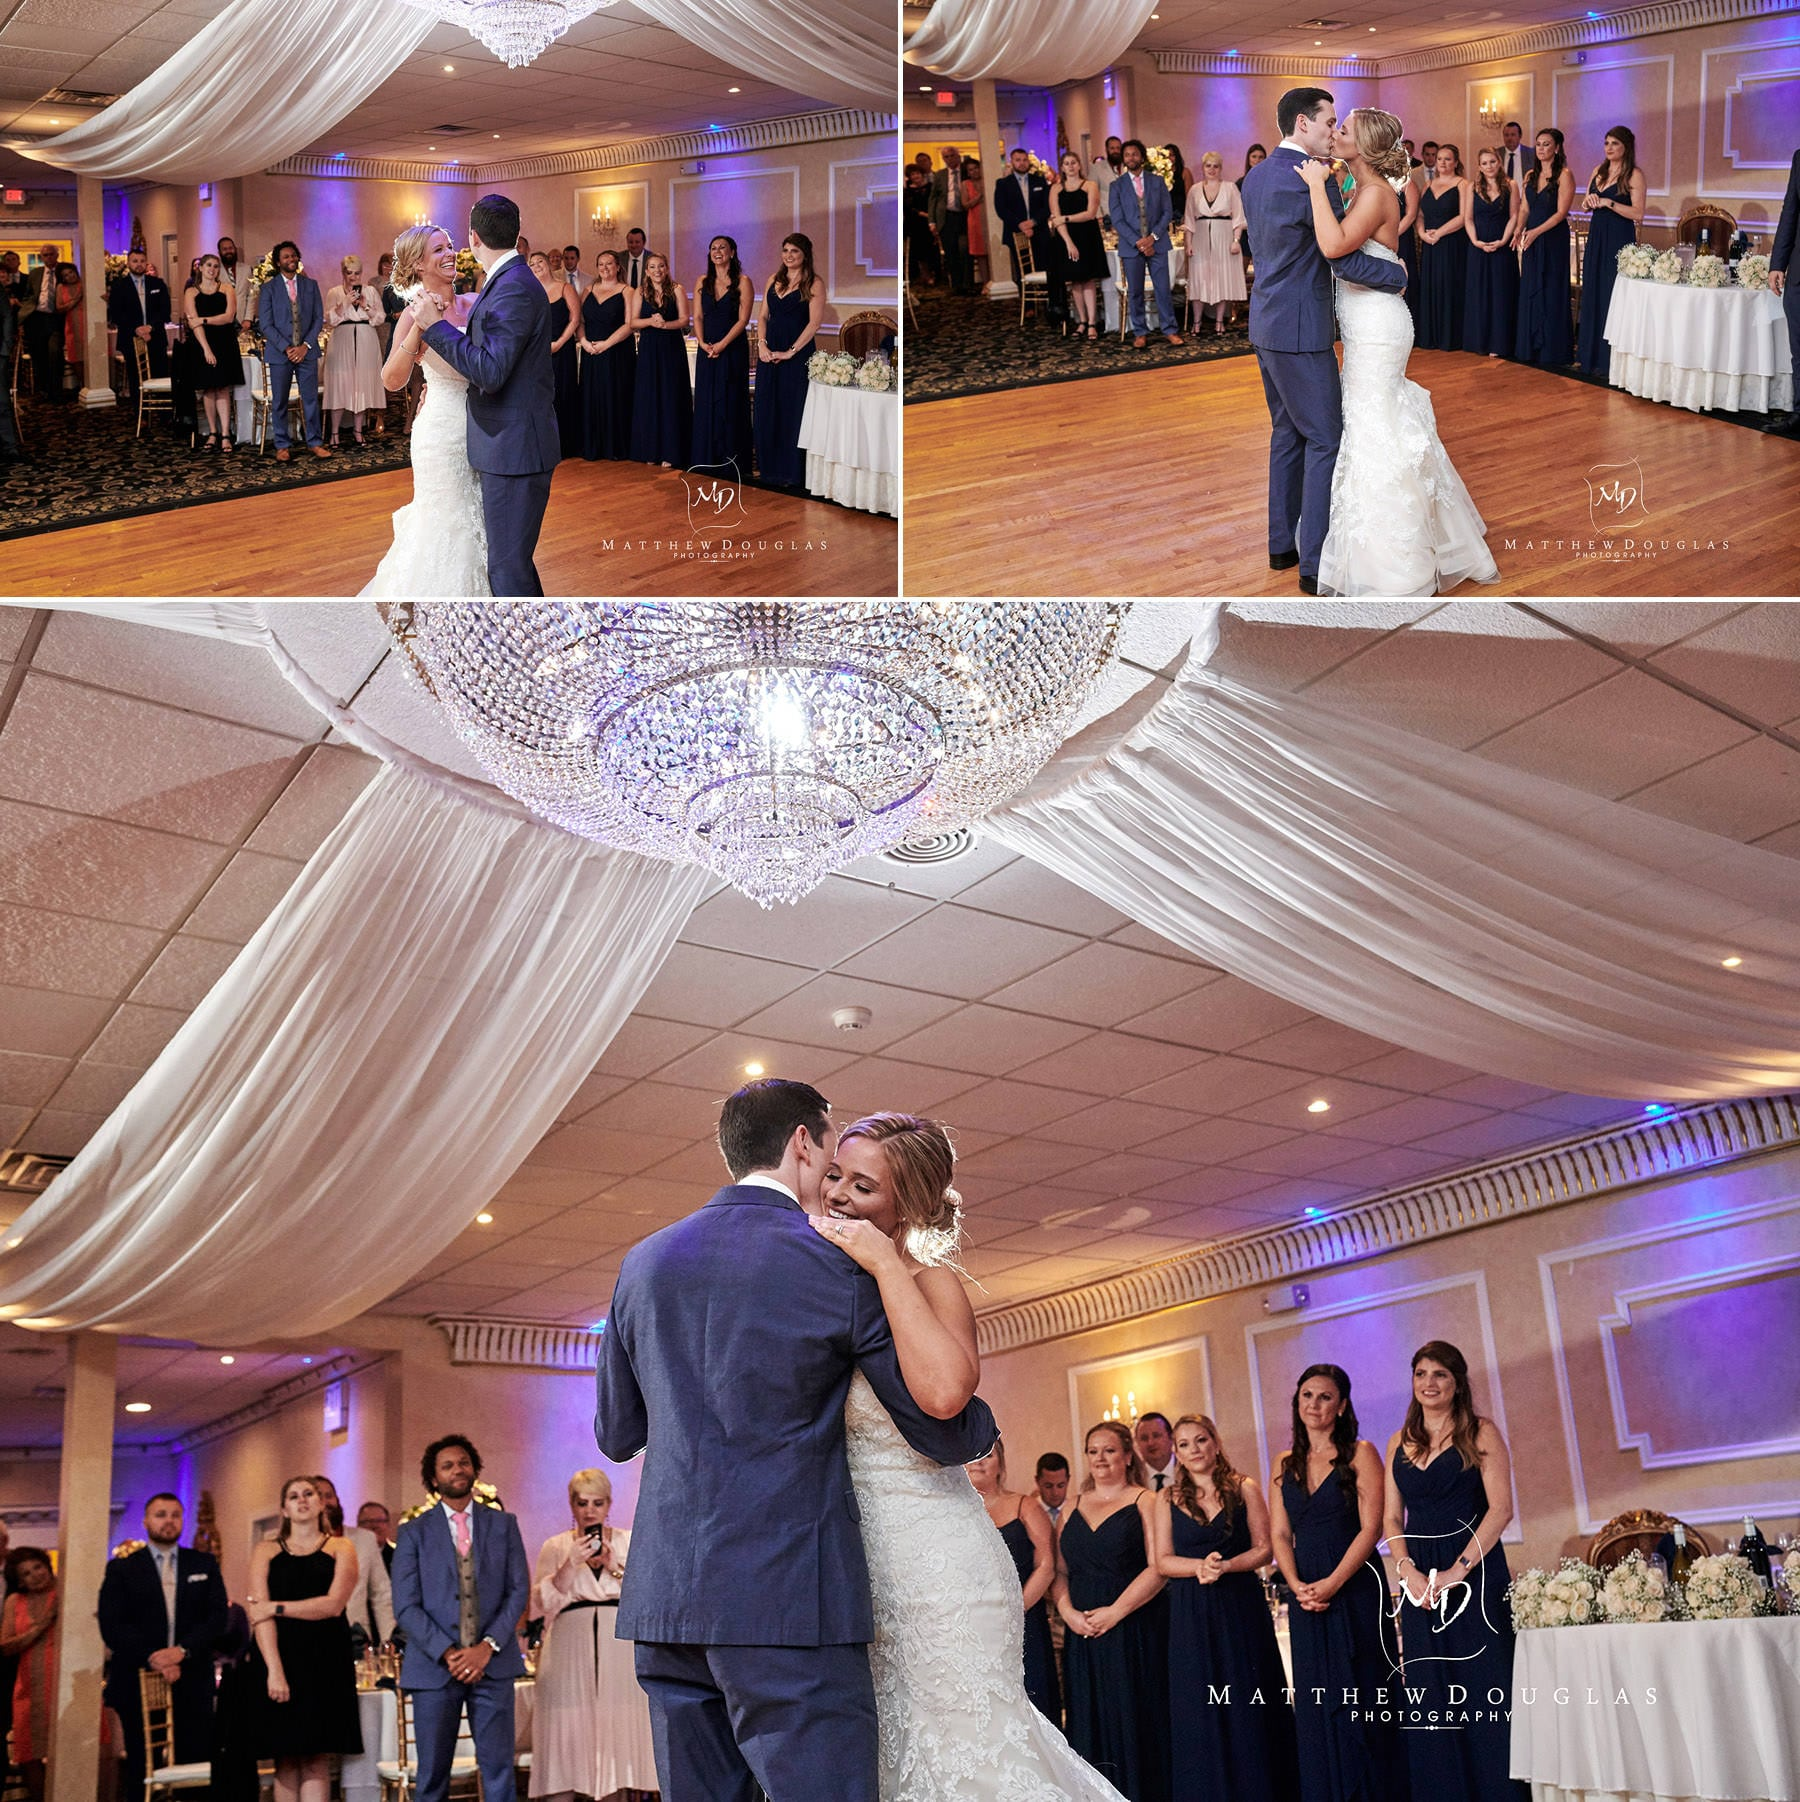 Chandelier Flanders Valley Wedding first dance photos